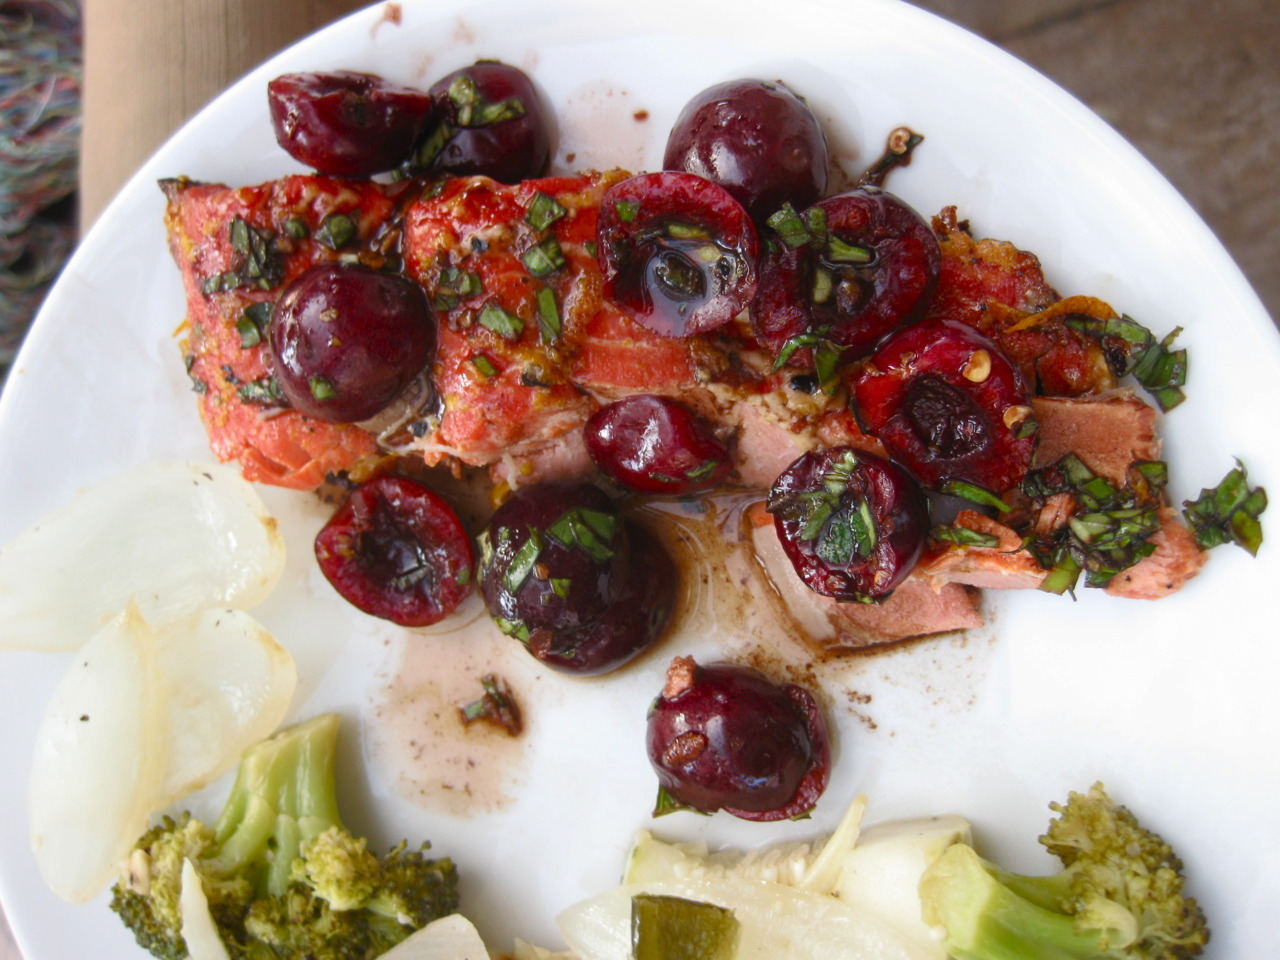 Caramelized Wild Salmon with Cherry Salsa I love trying new things and this one was really quite different. My only issue was that I thought perhaps the cherries distracted from the salmon flavor a bit. I didn't have mangos on hand so perhaps if I had added those the dish would have been more cohesive. Howeverrrrr the glaze is highly recommended. (I went very light on the sugar and stronger on the citrus and salt.)